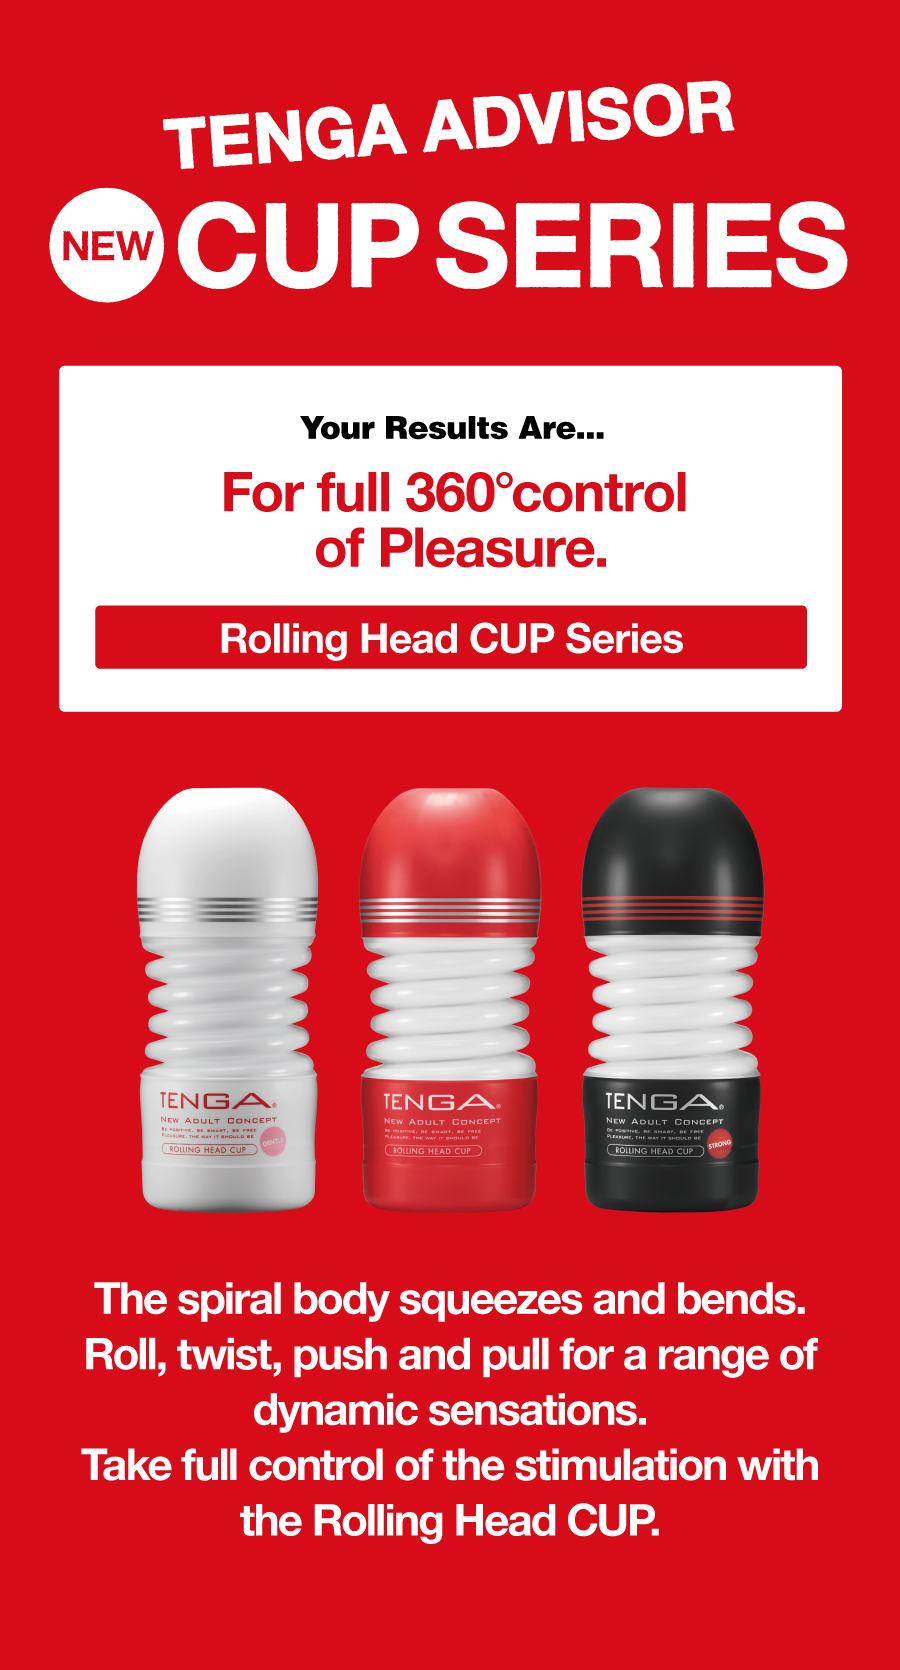 TENGA ADVISOR NEW CUP SERIES Your Results Are... For full 360° control of Pleasure. Rolling Head CUP Series The spiral body squeezes and bends. Roll, twist, push and pull for a range of dynamic sensations. Take full control of the stimulation with the Rolling Head CUP.